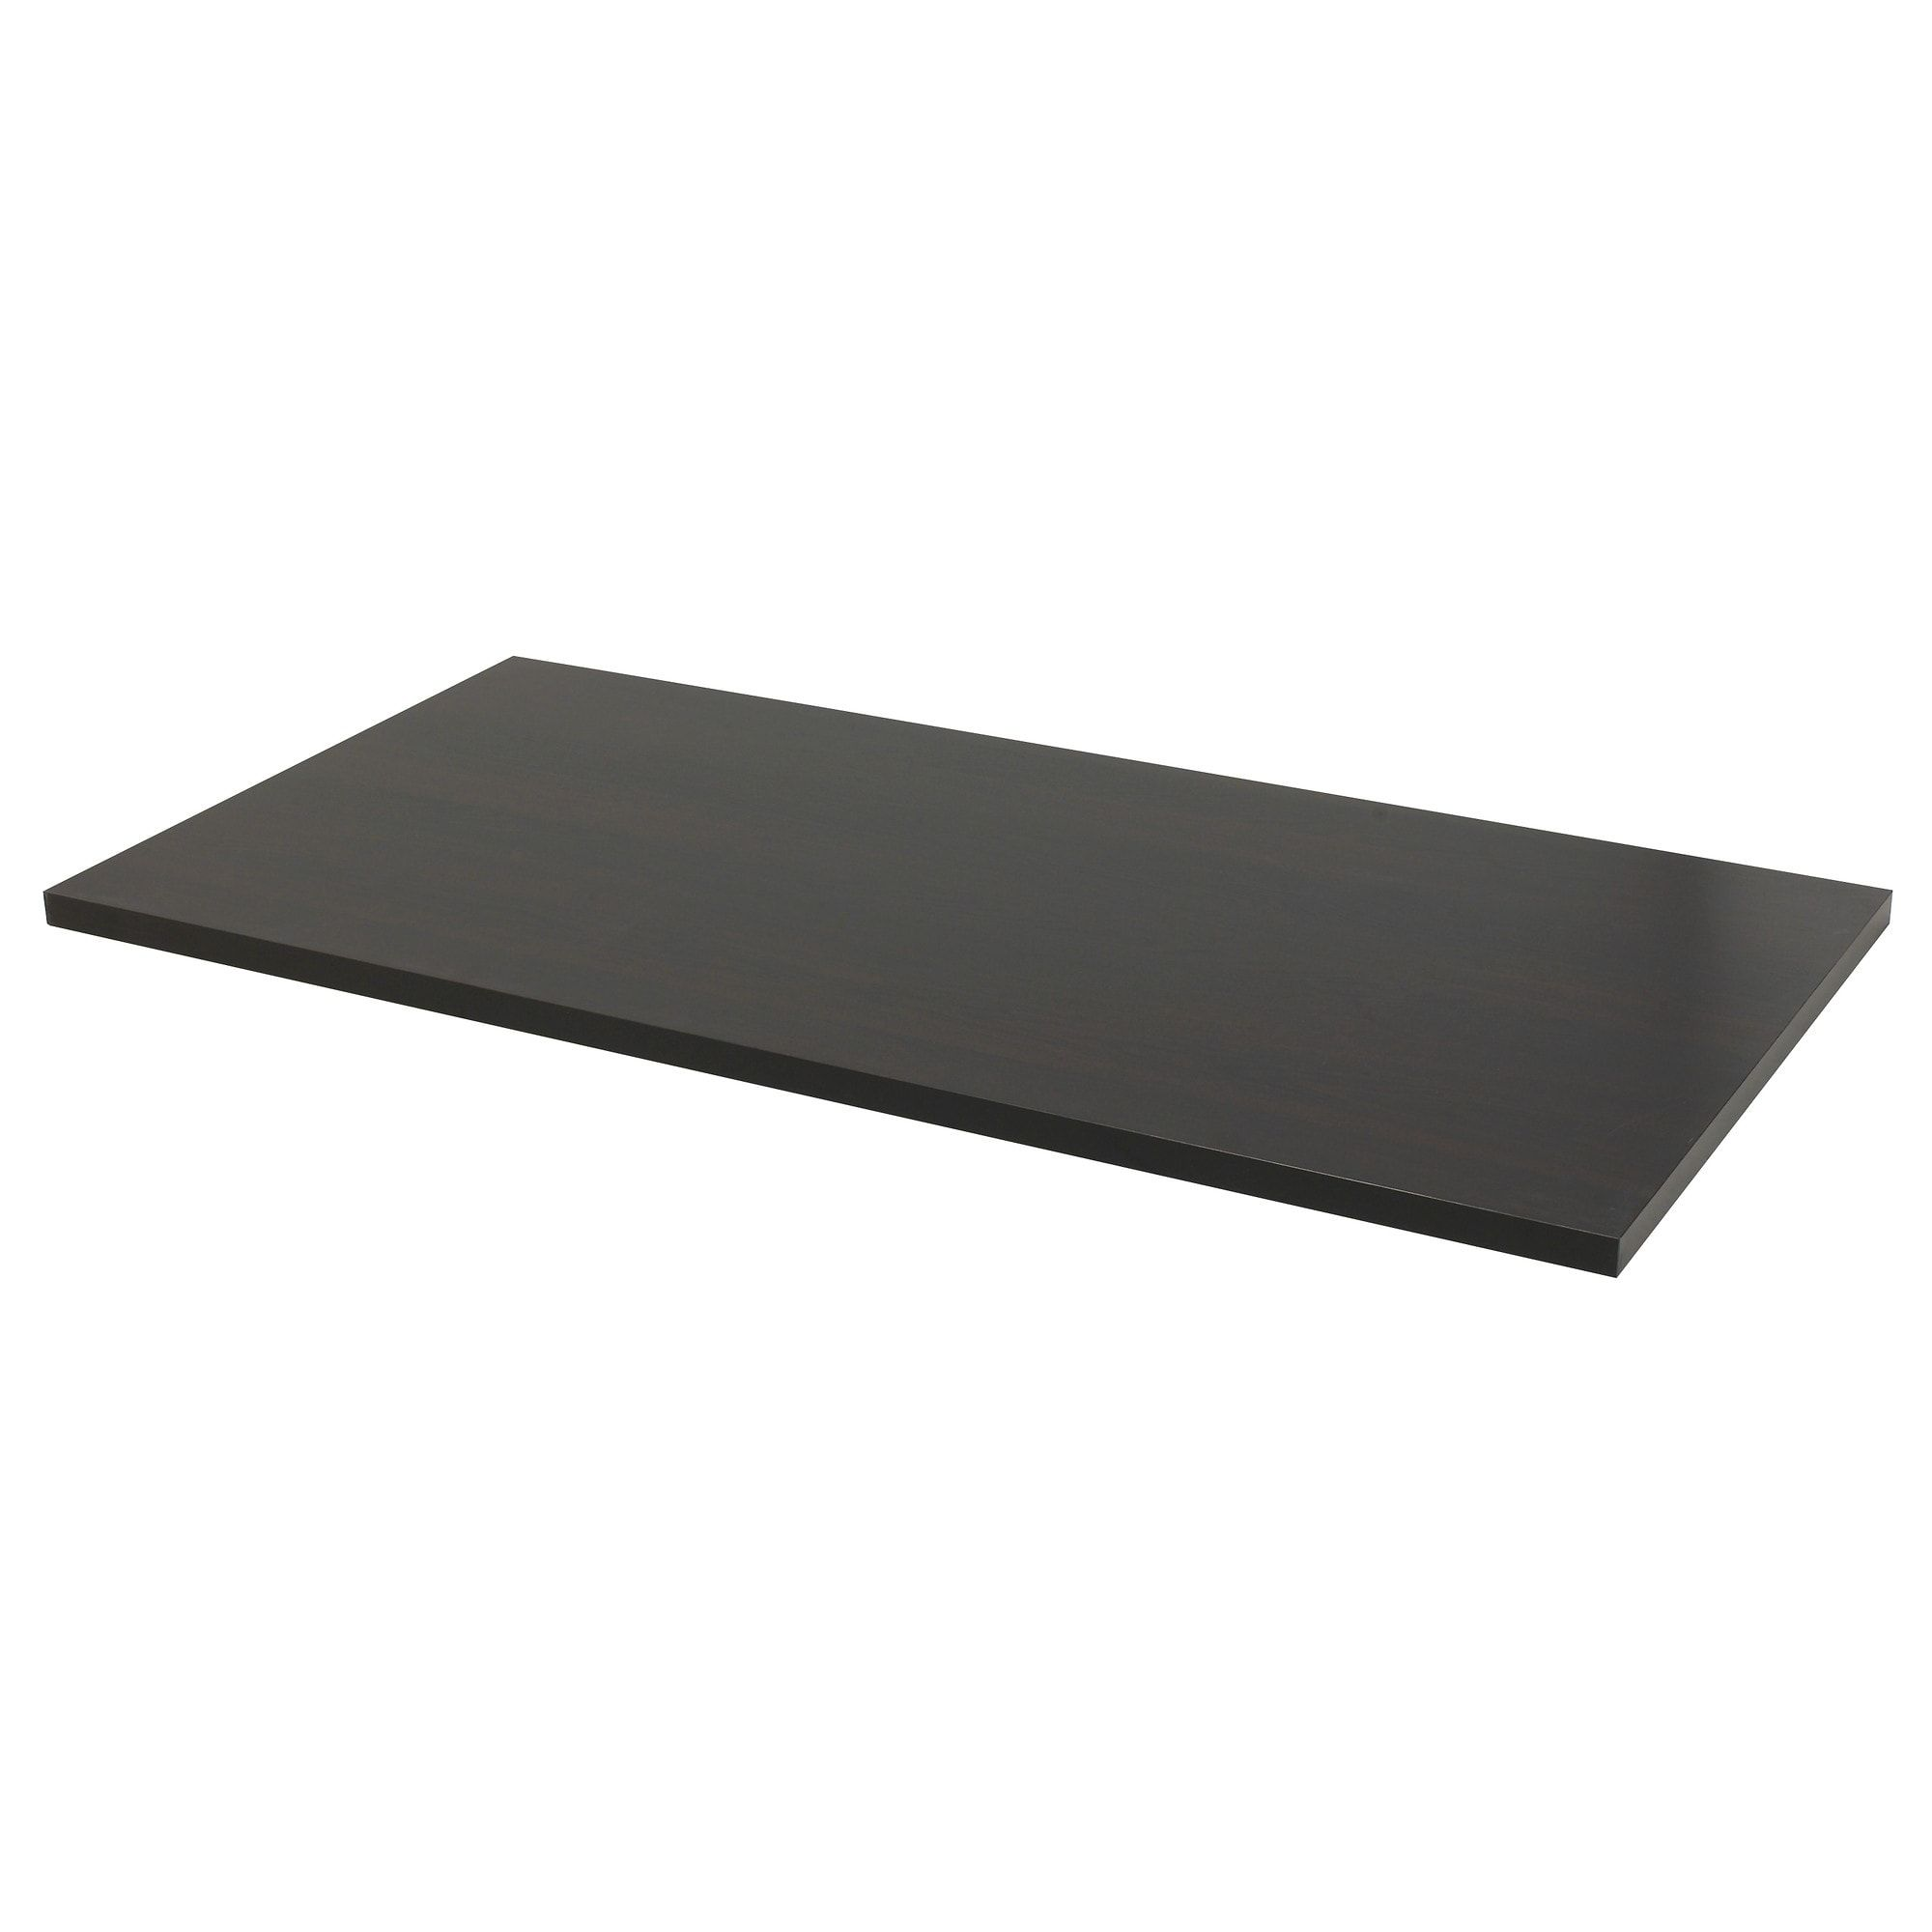 Linnmon Tabletop Black Brown 59x29 1 2 Ikea Linnmon Table Top Ikea Glass Table Top Glass Top Coffee Table